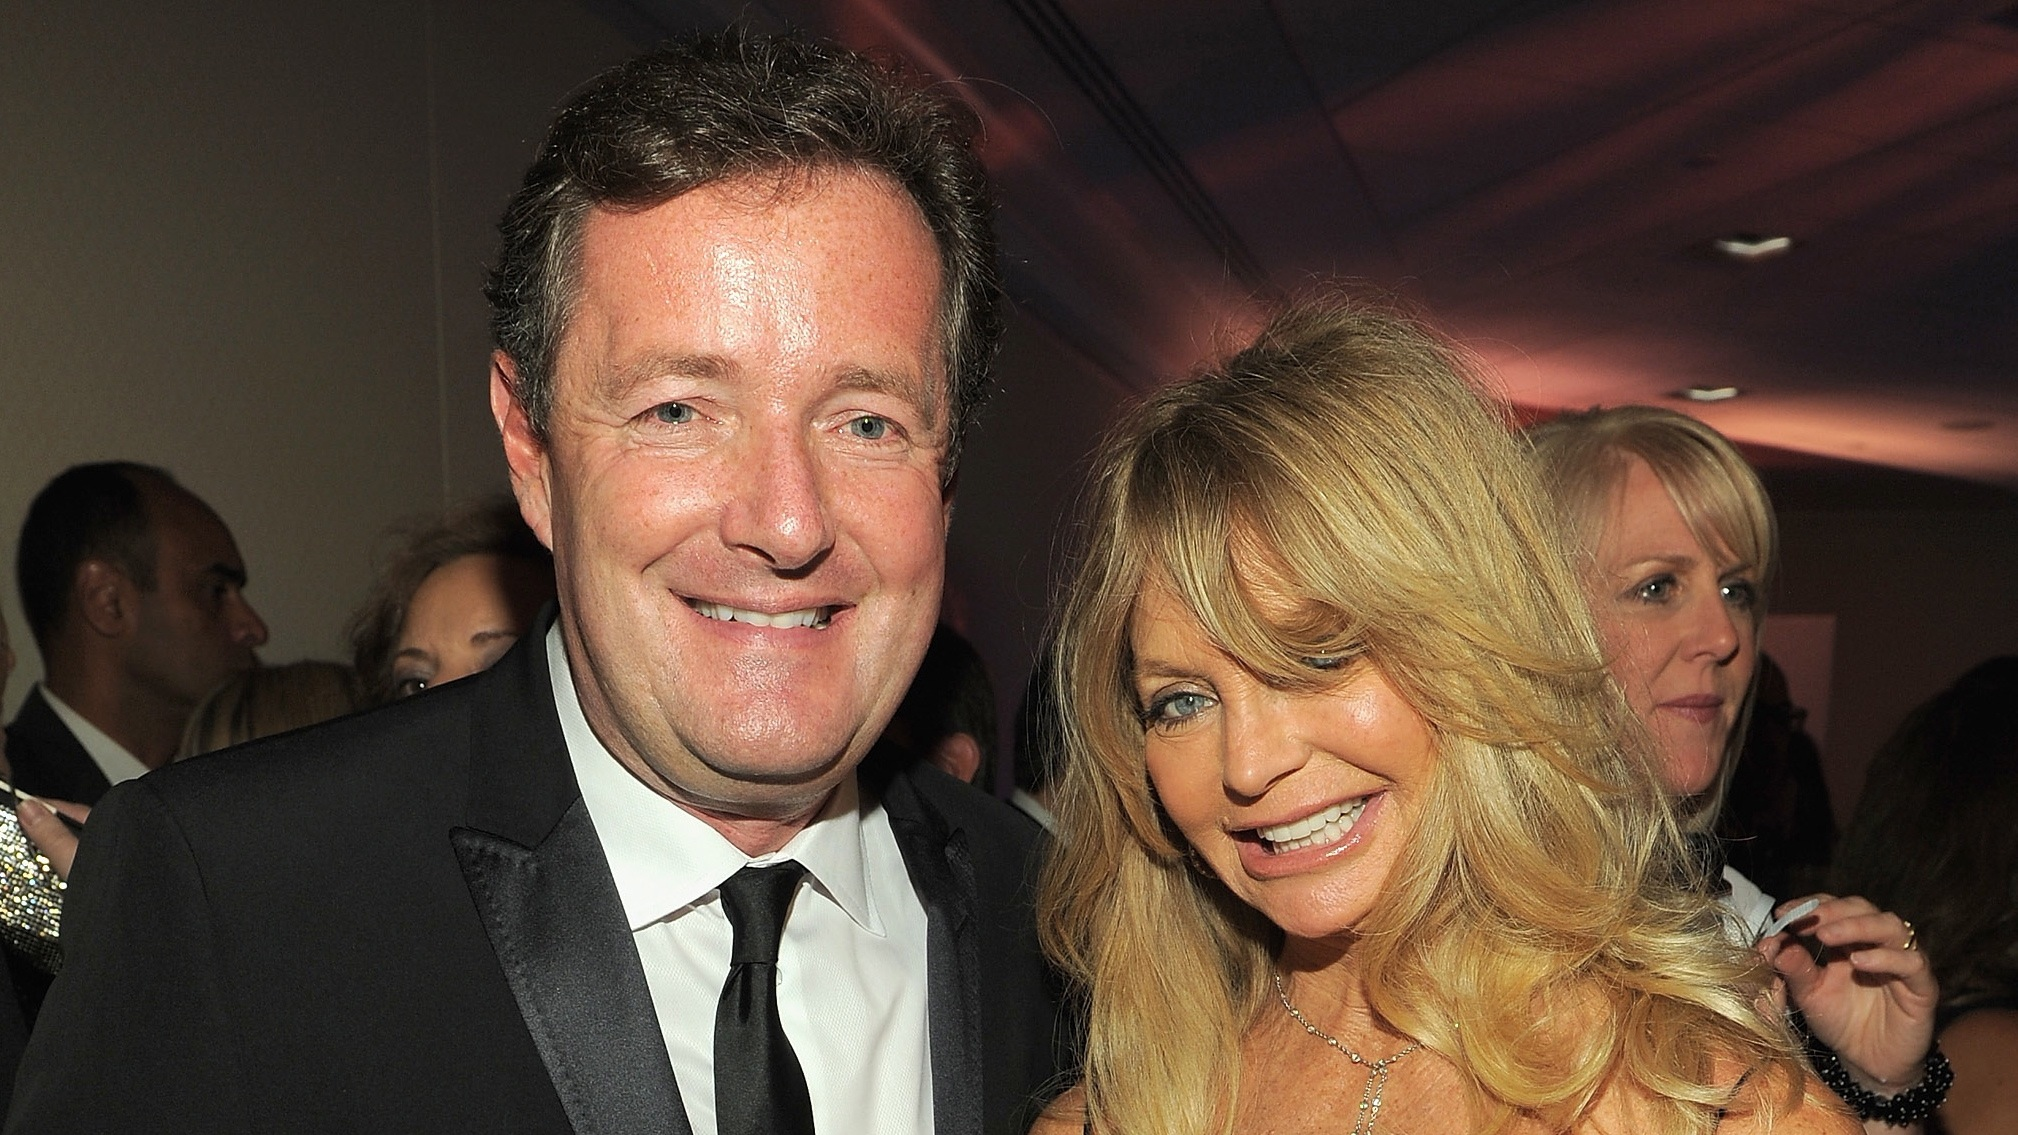 Piers Morgan on the White House Correspondents Dinner and his lovely date, Goldie Hawn